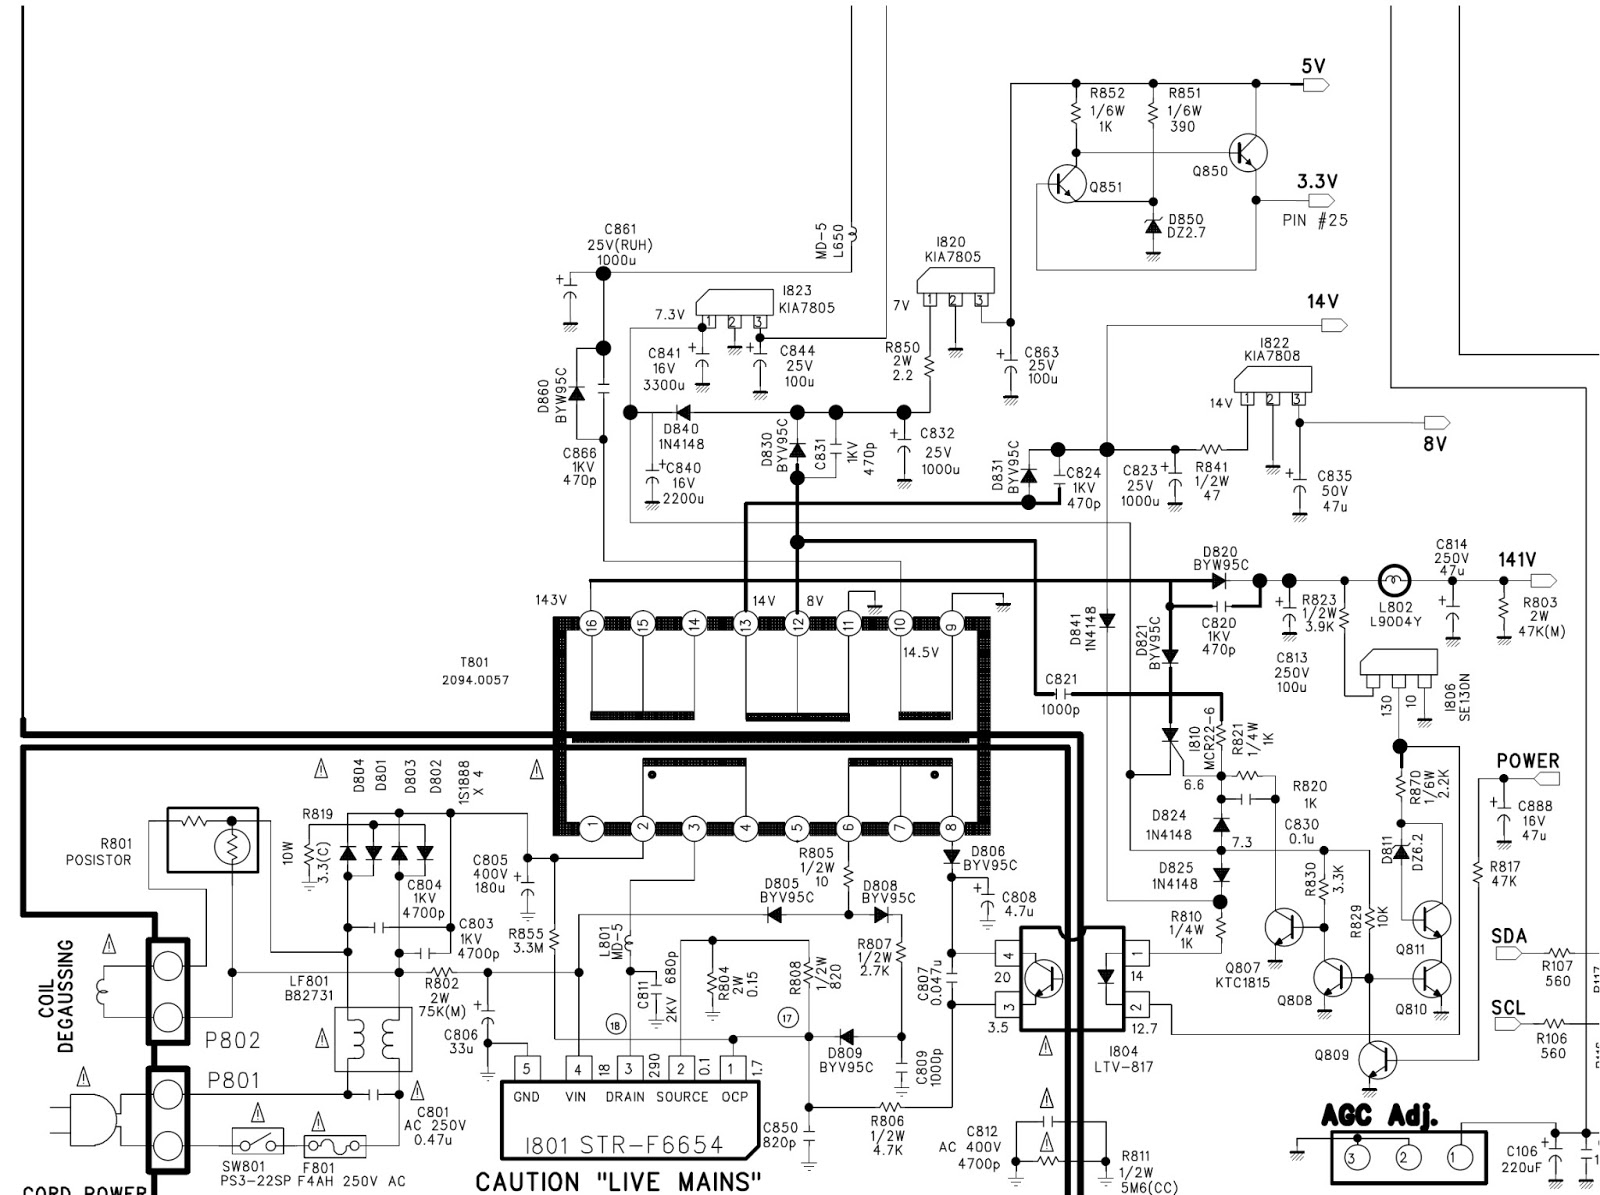 Str f6654 based smps power supply schematic diagram daewoo dsc str f6654 based smps power supply schematic diagram daewoo dsc 3210 tv based circuit cheapraybanclubmaster Images